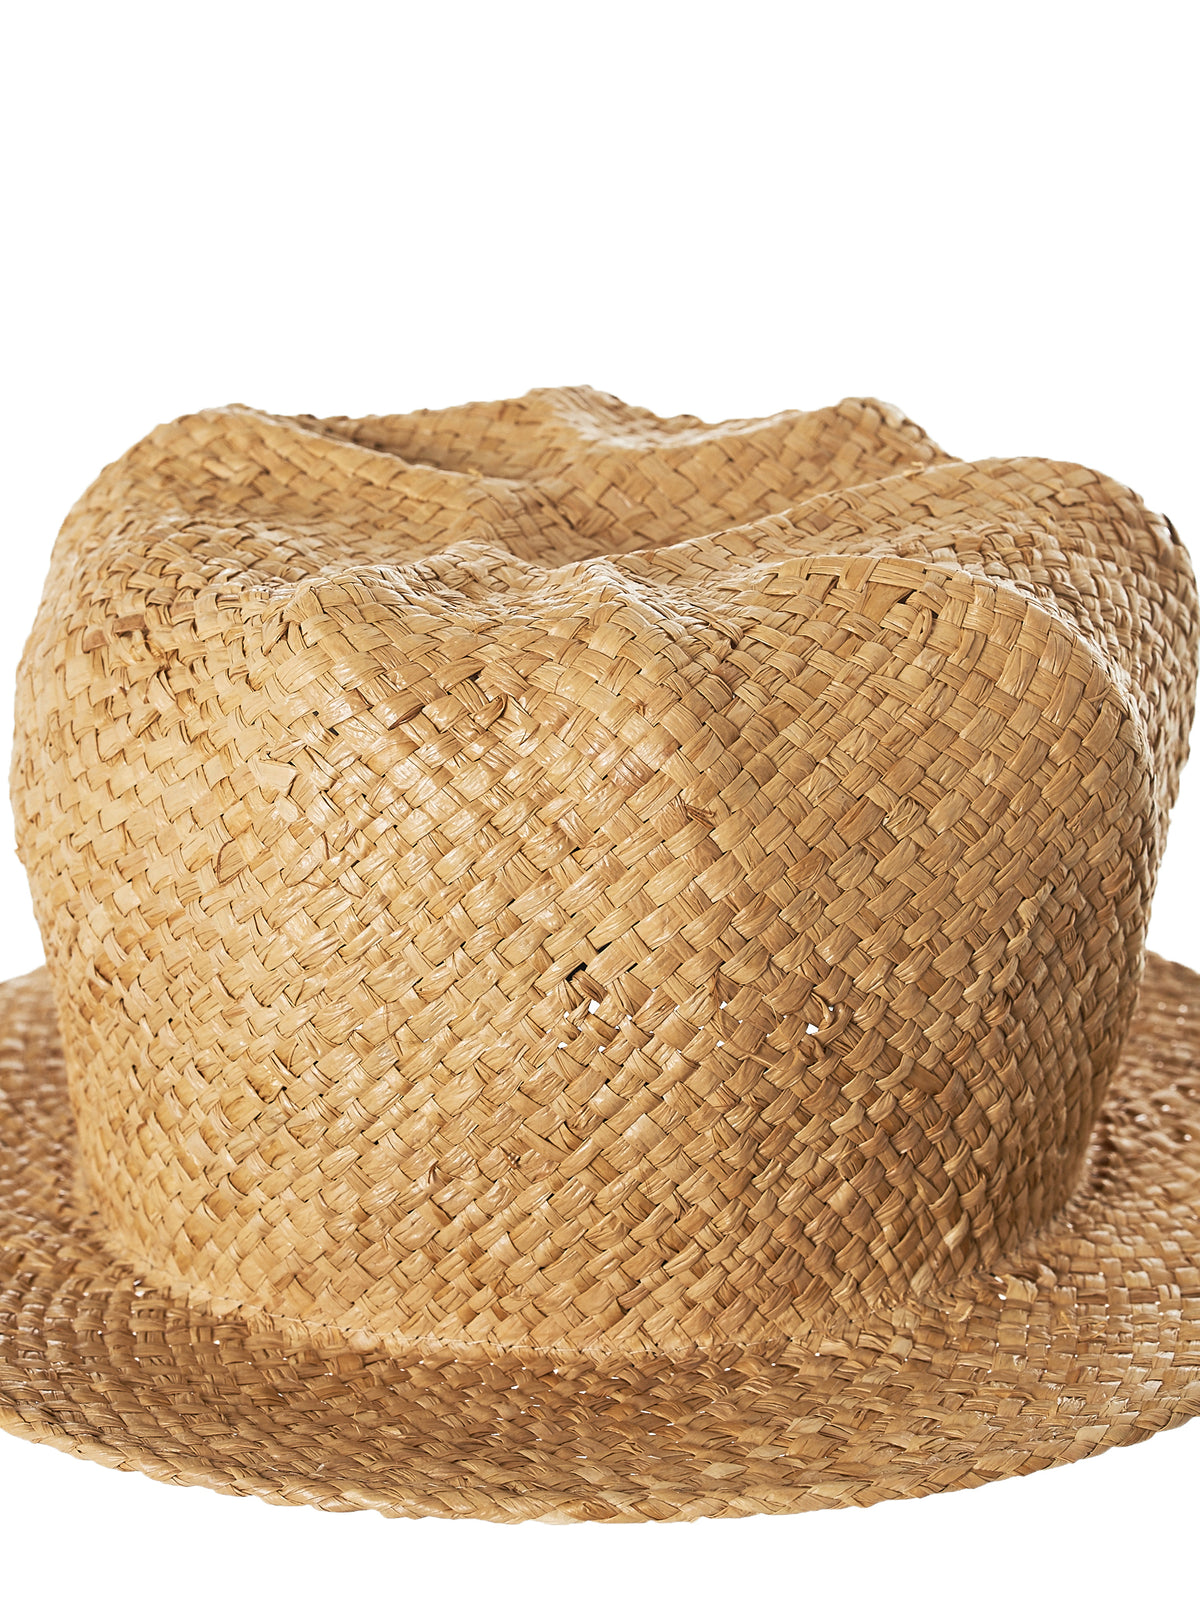 Straw Top Hat (SHK00445-NATURAL)